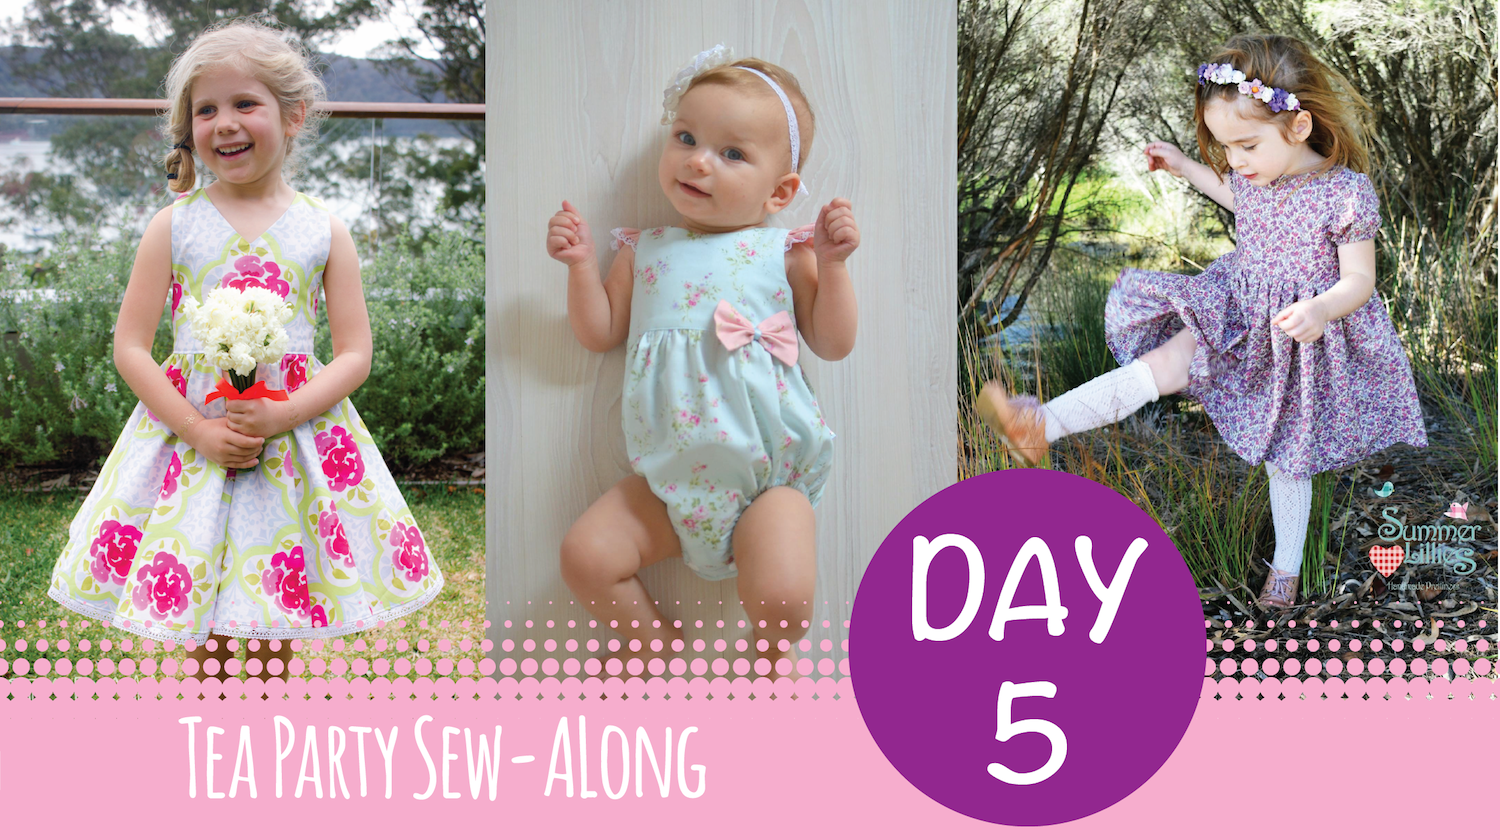 Tadah Tea Party Sew Along - Day 5